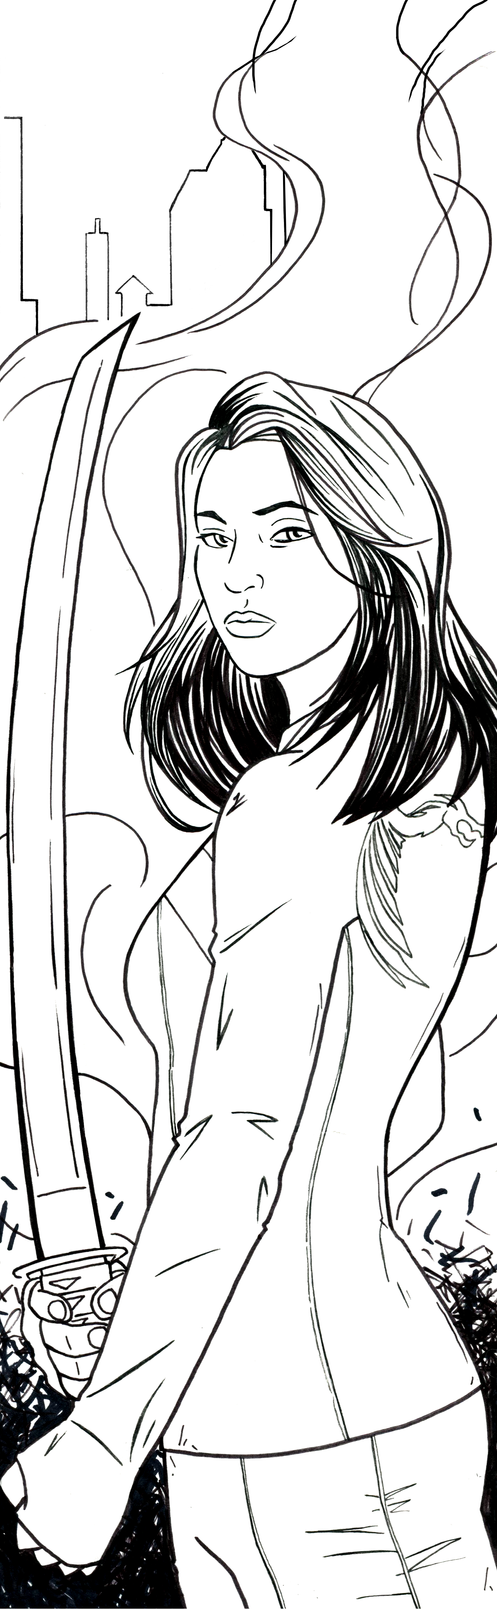 Colleen Wing Art Inks by RichBernatovech